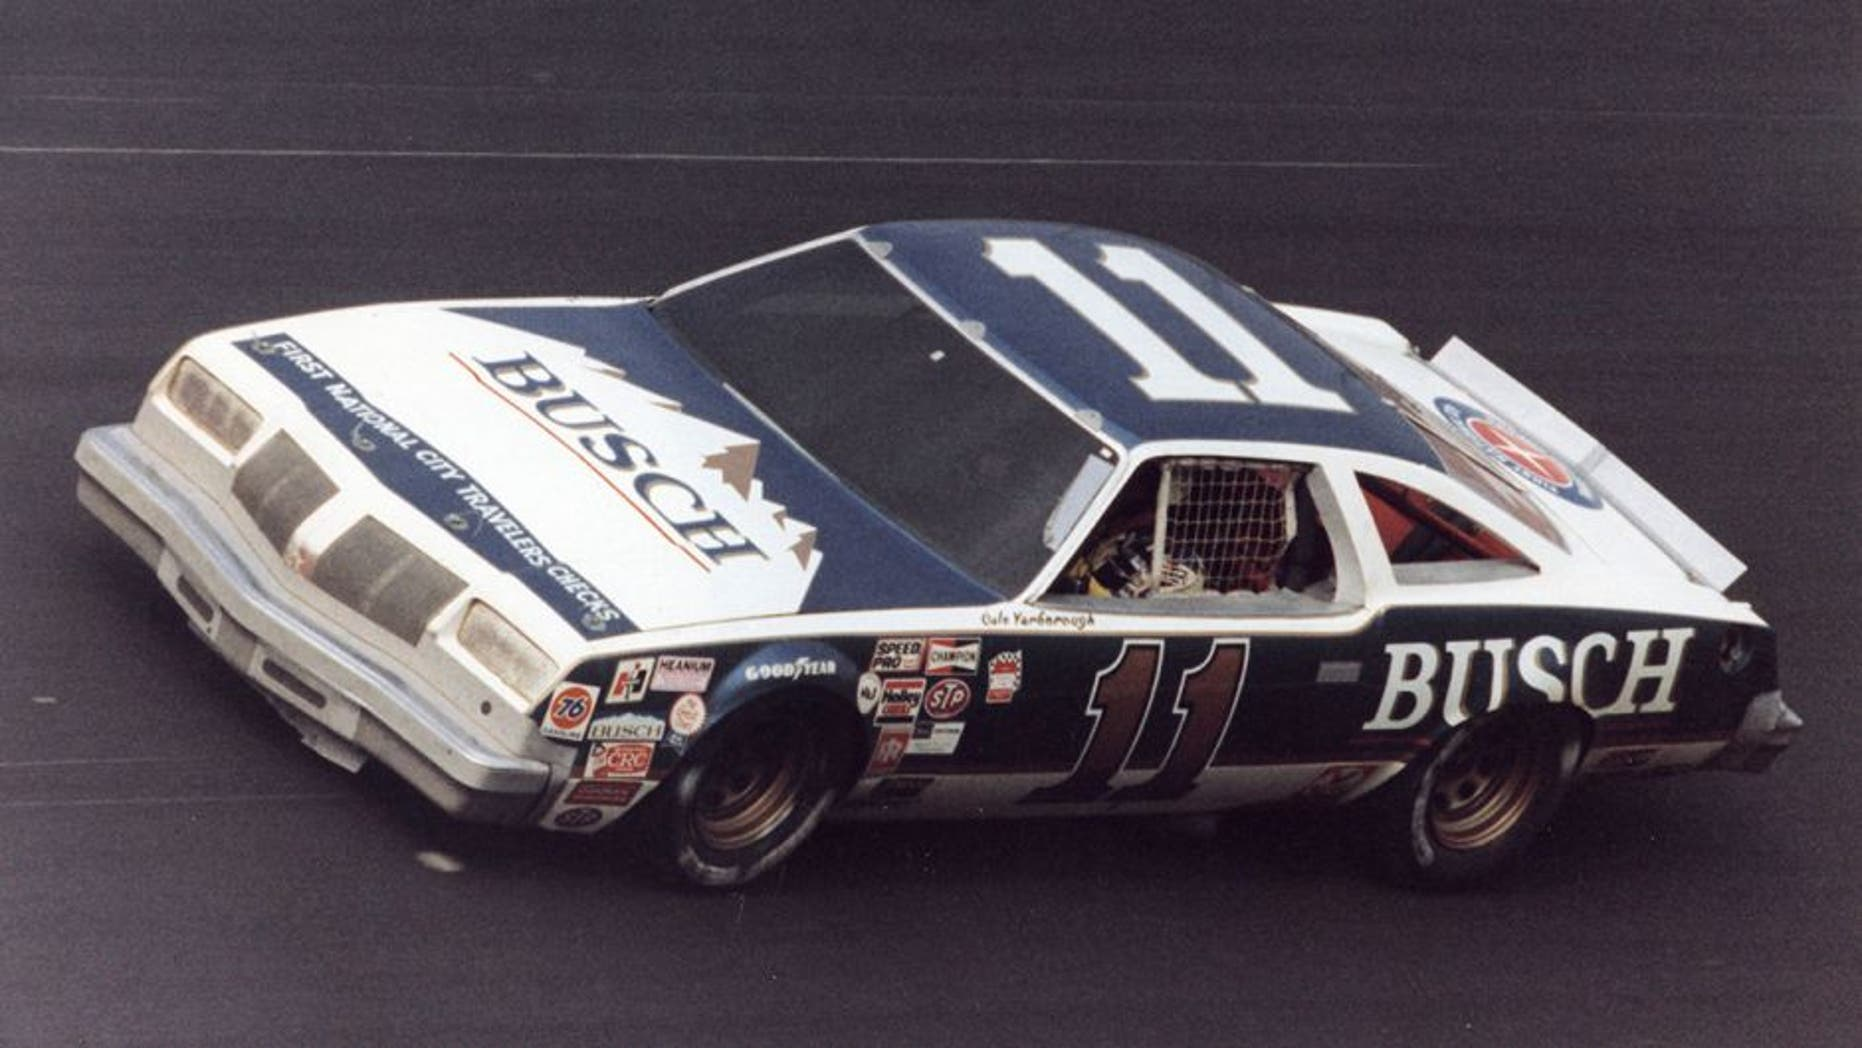 1979: Cale Yarborough at the wheel of Junior JohnsonÕs Busch Beer Oldsmobile during a NASCAR Winston Cup race. Yarborough had four wins in Õ79 and finished fourth in Winston Cup points. (Photo by ISC Images & Archives via Getty Images)